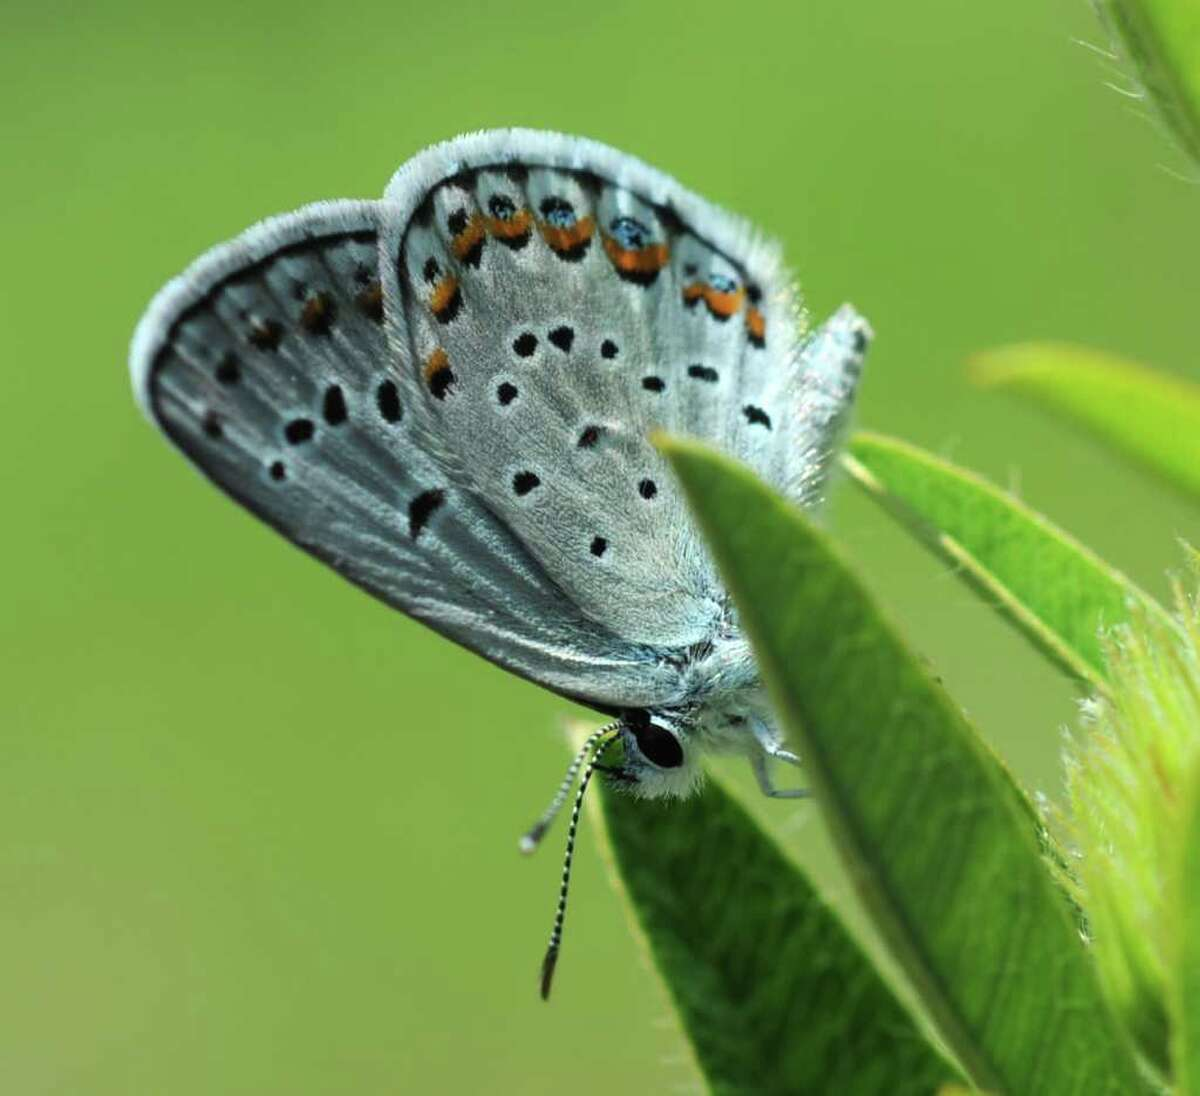 Detail of a Karner blue butterfly Tuesday July 26, 2011, in the Pine Bush Preserve in Albany, N.Y. (Will Waldron /Times Union)